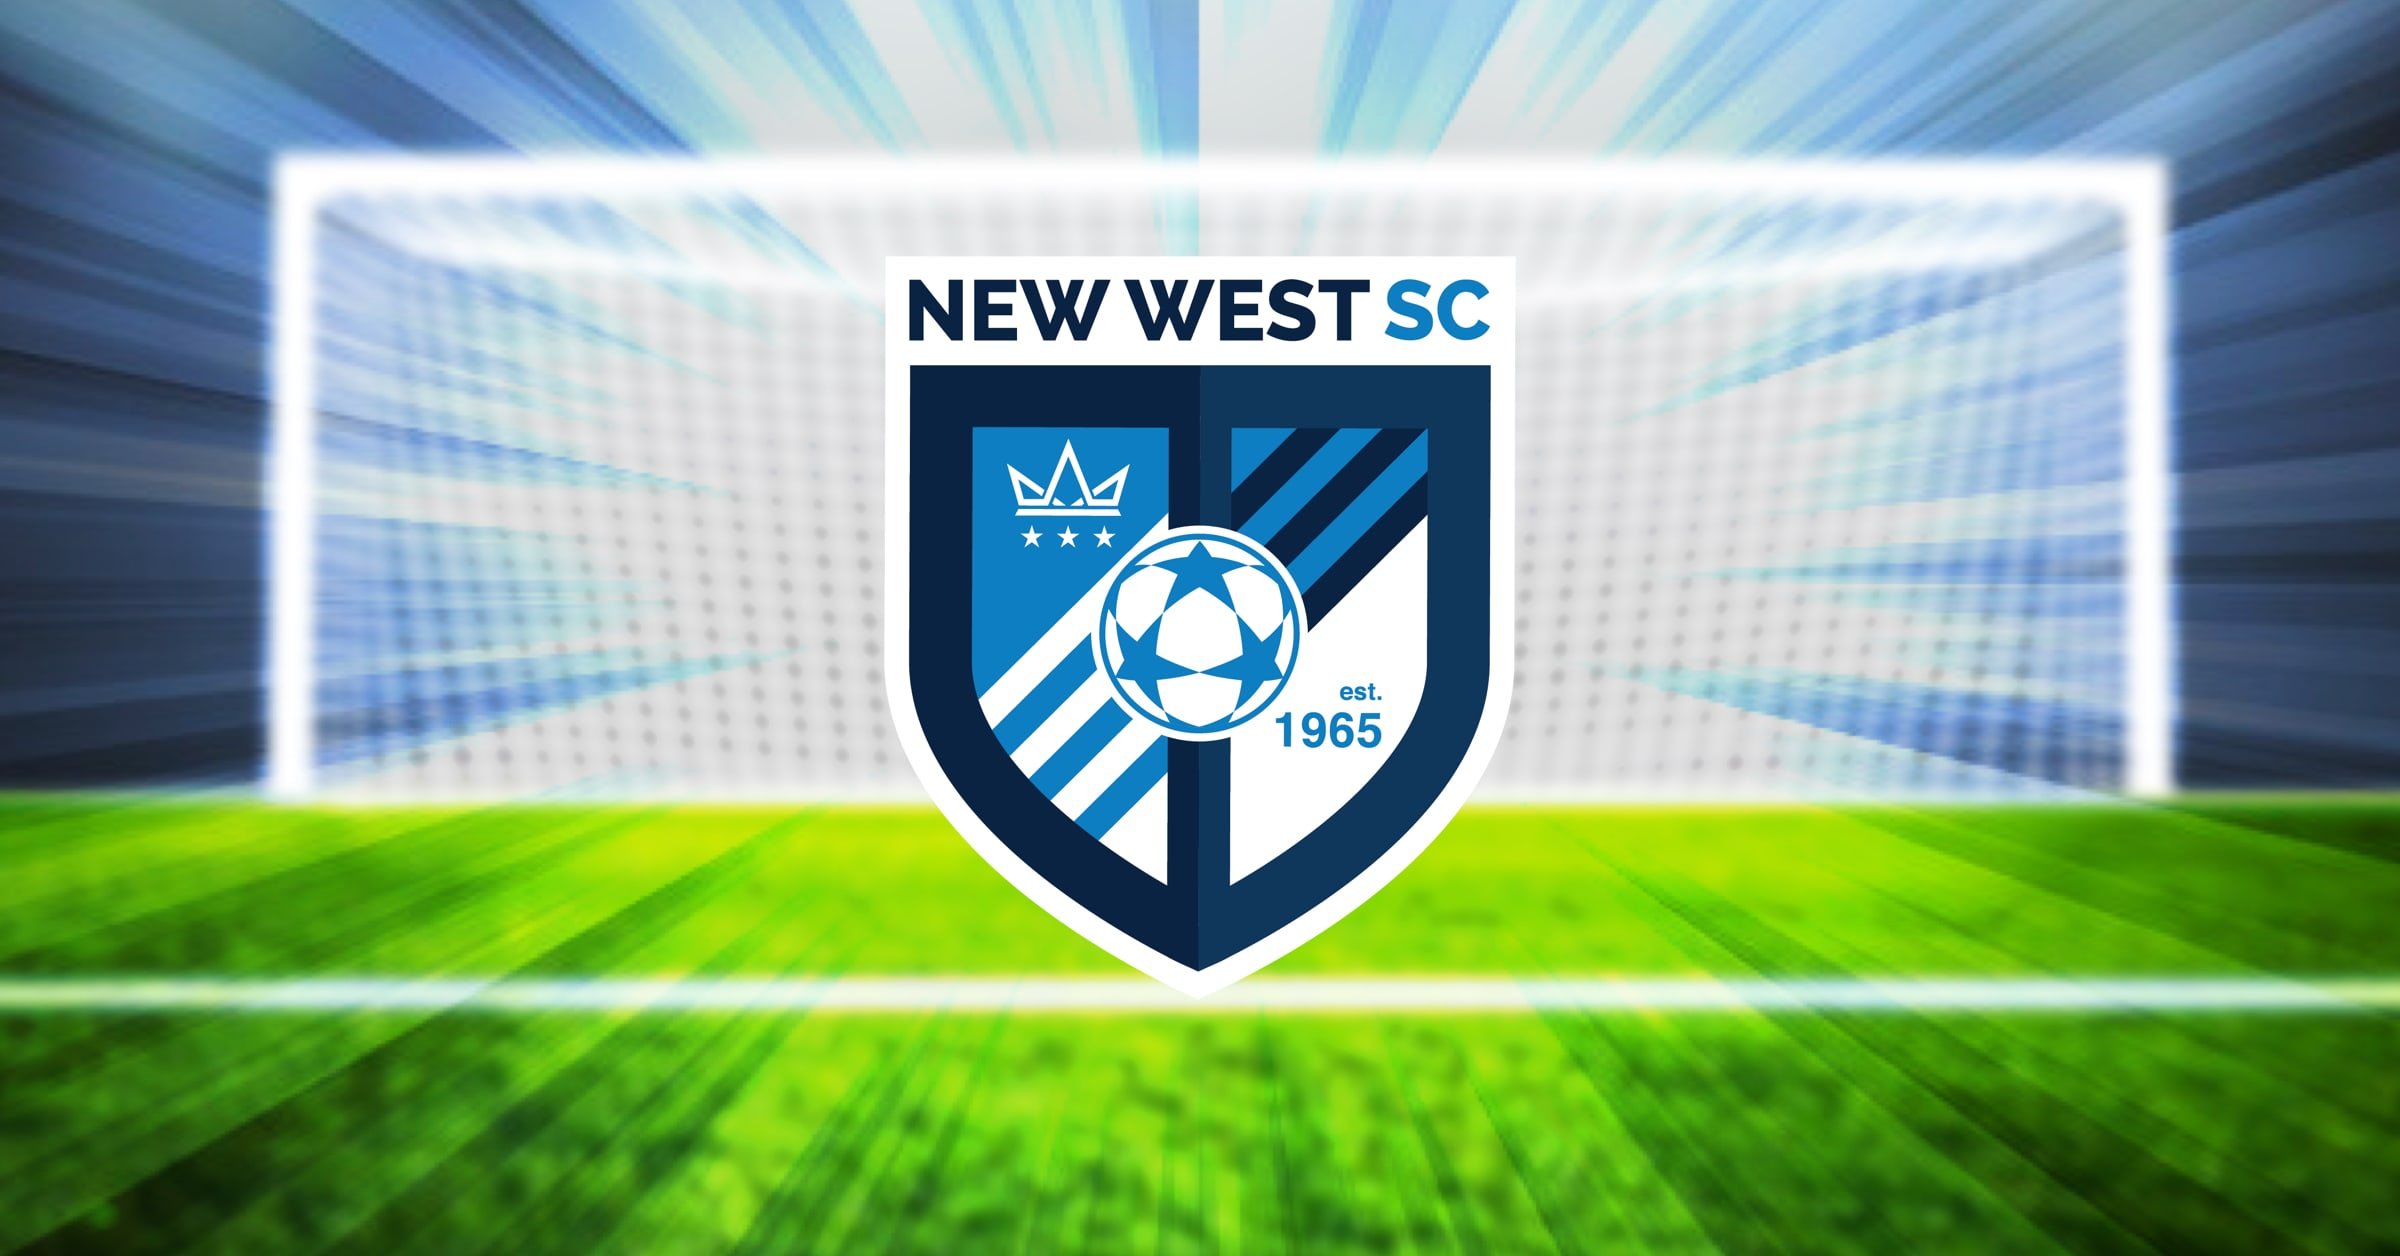 New West Soccer Club